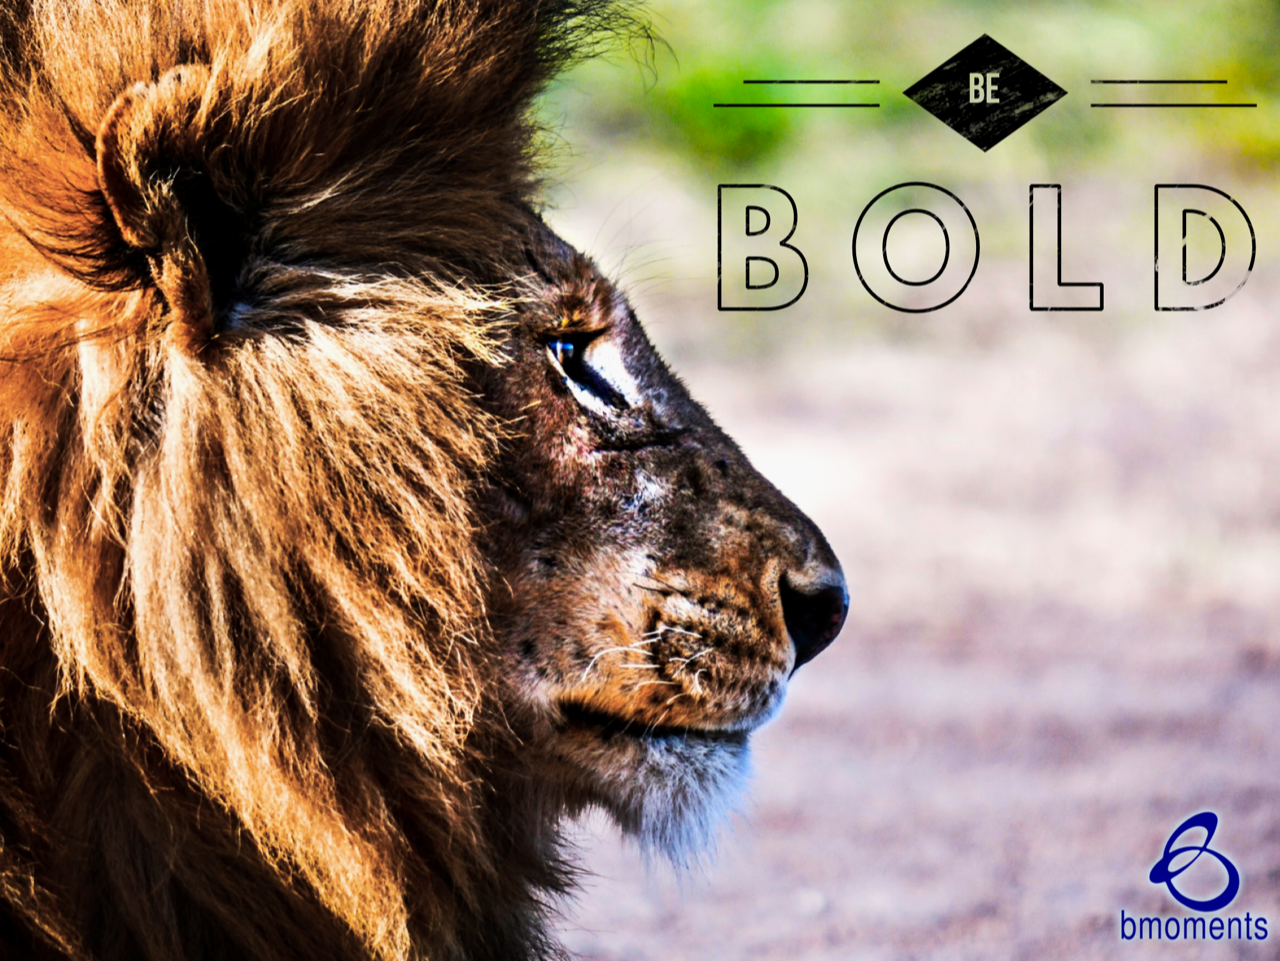 Be Bold: Challenge the Status Quo